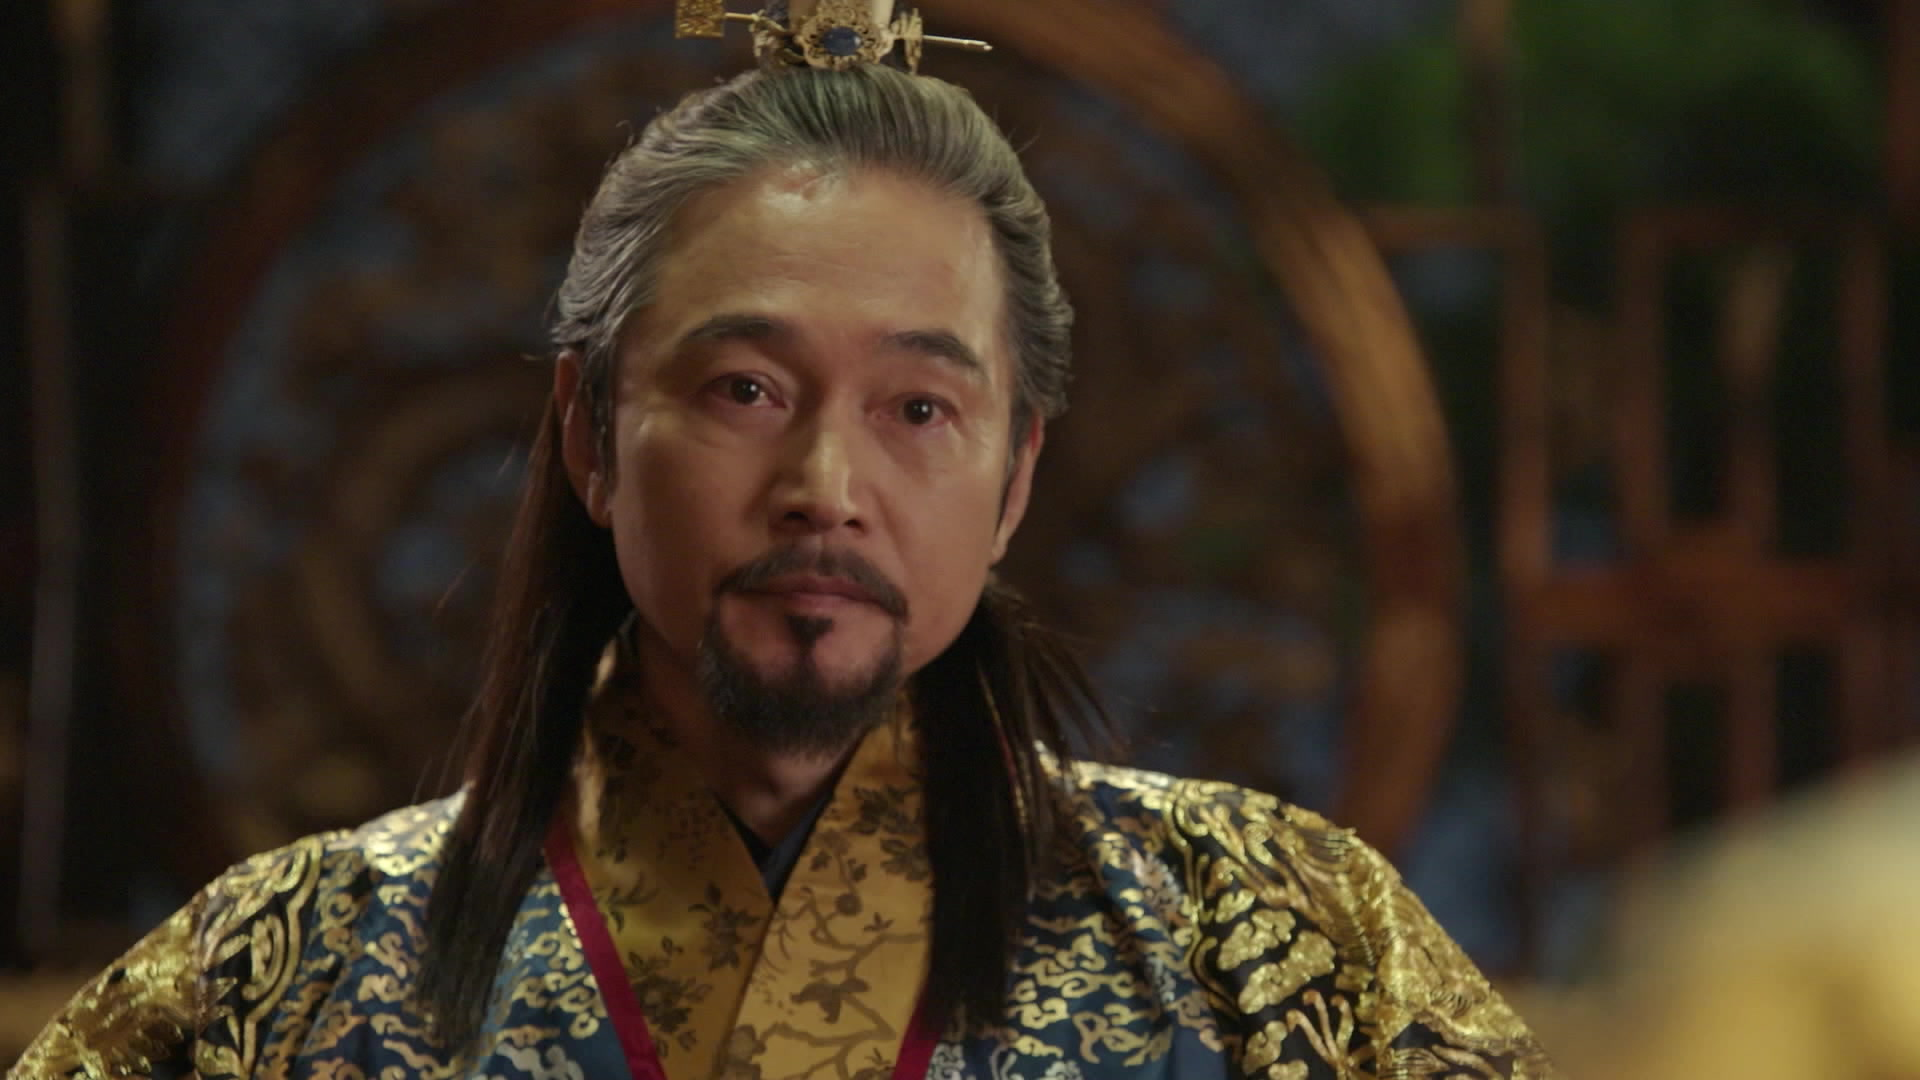 The King Loves Episode 8